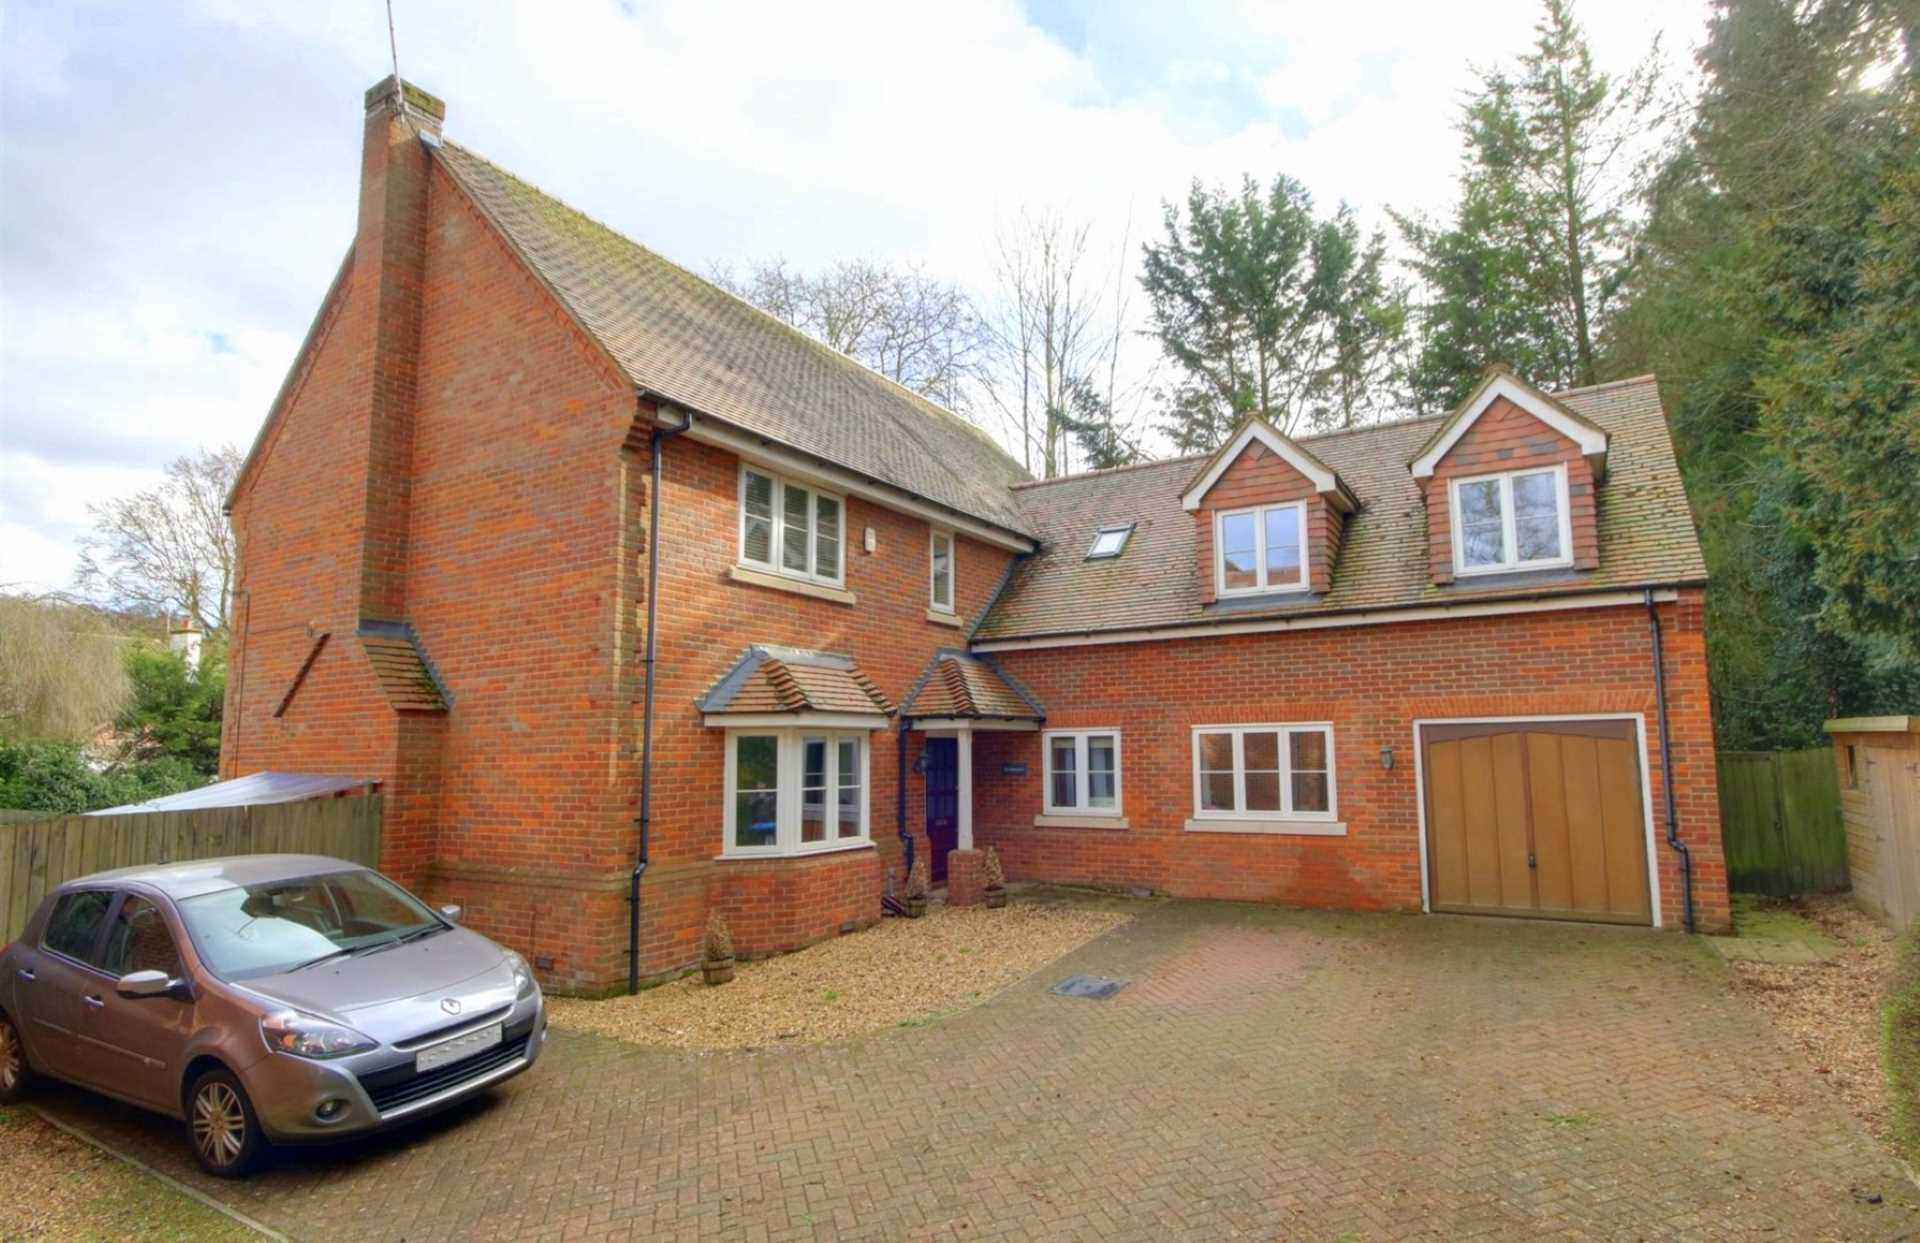 5 BED OFFERED FURNISHED & AVAILABLE June 2021, Image 1